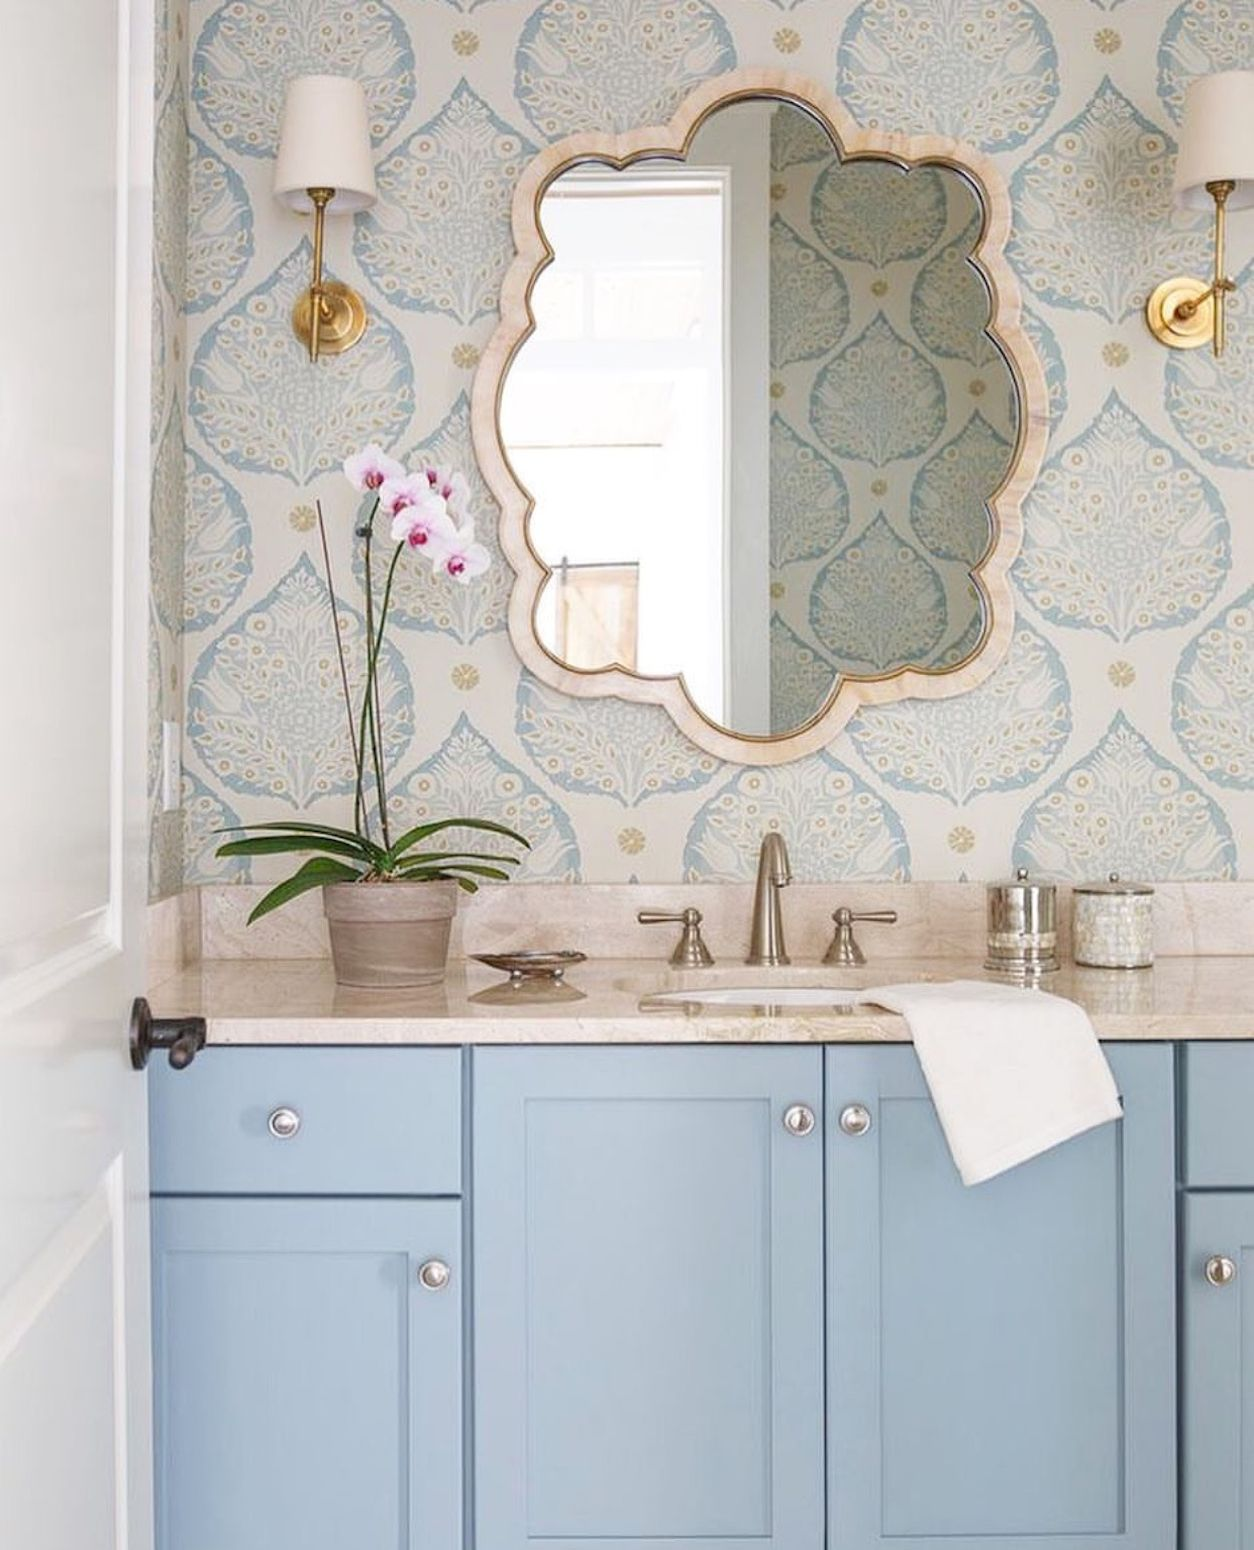 Incredible 70+ Best Small Bathroom Wallpaper Ideas on a Budget http ...